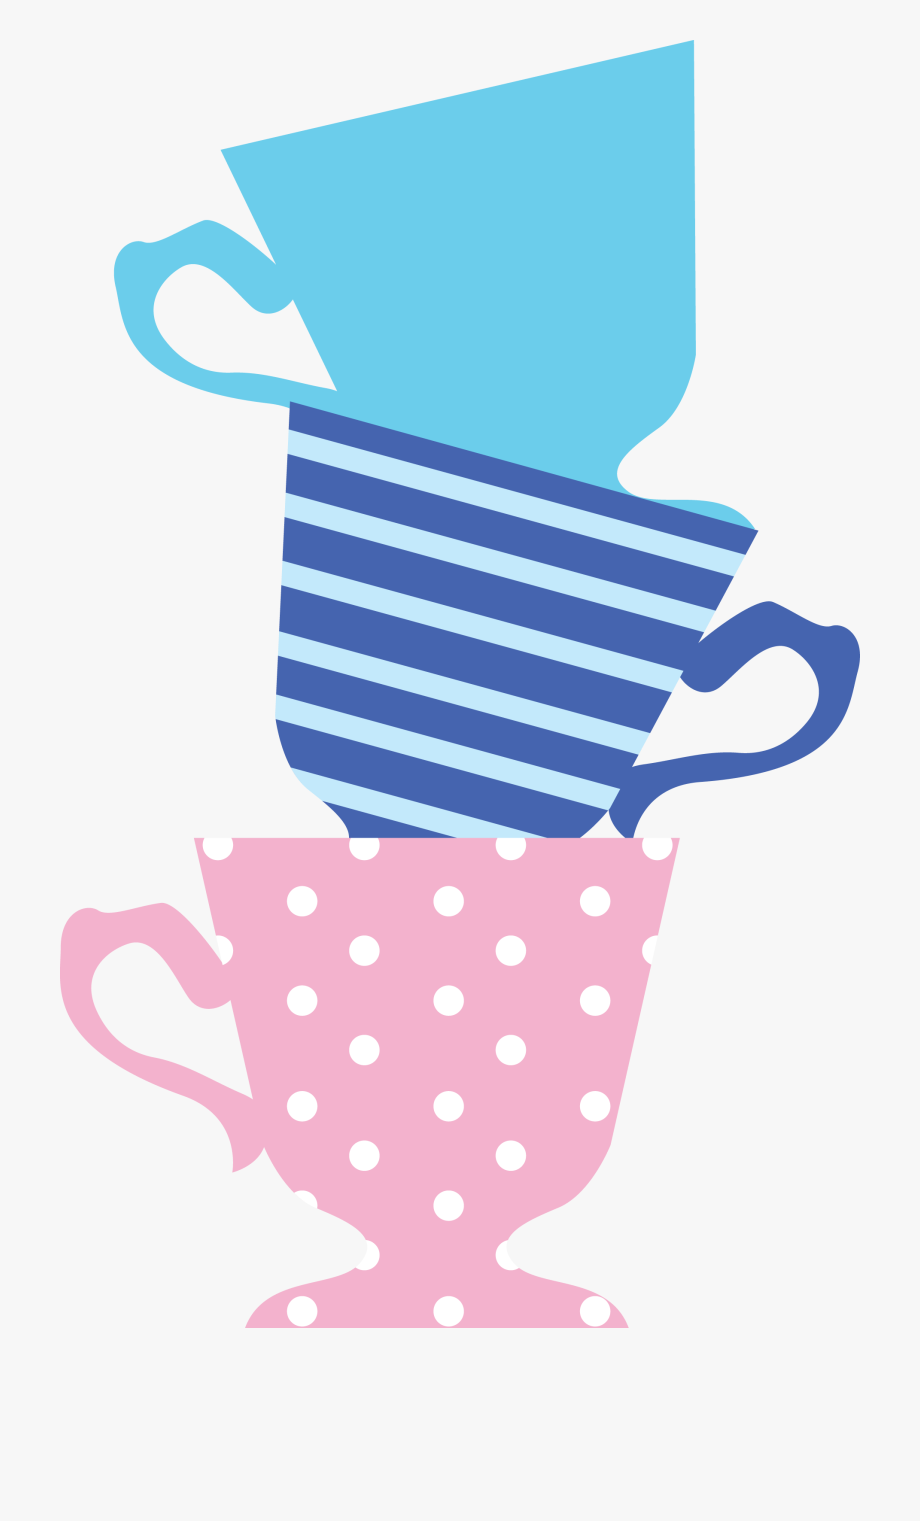 clip free download Alice in wonderland teacup clipart. Graphic royalty free download